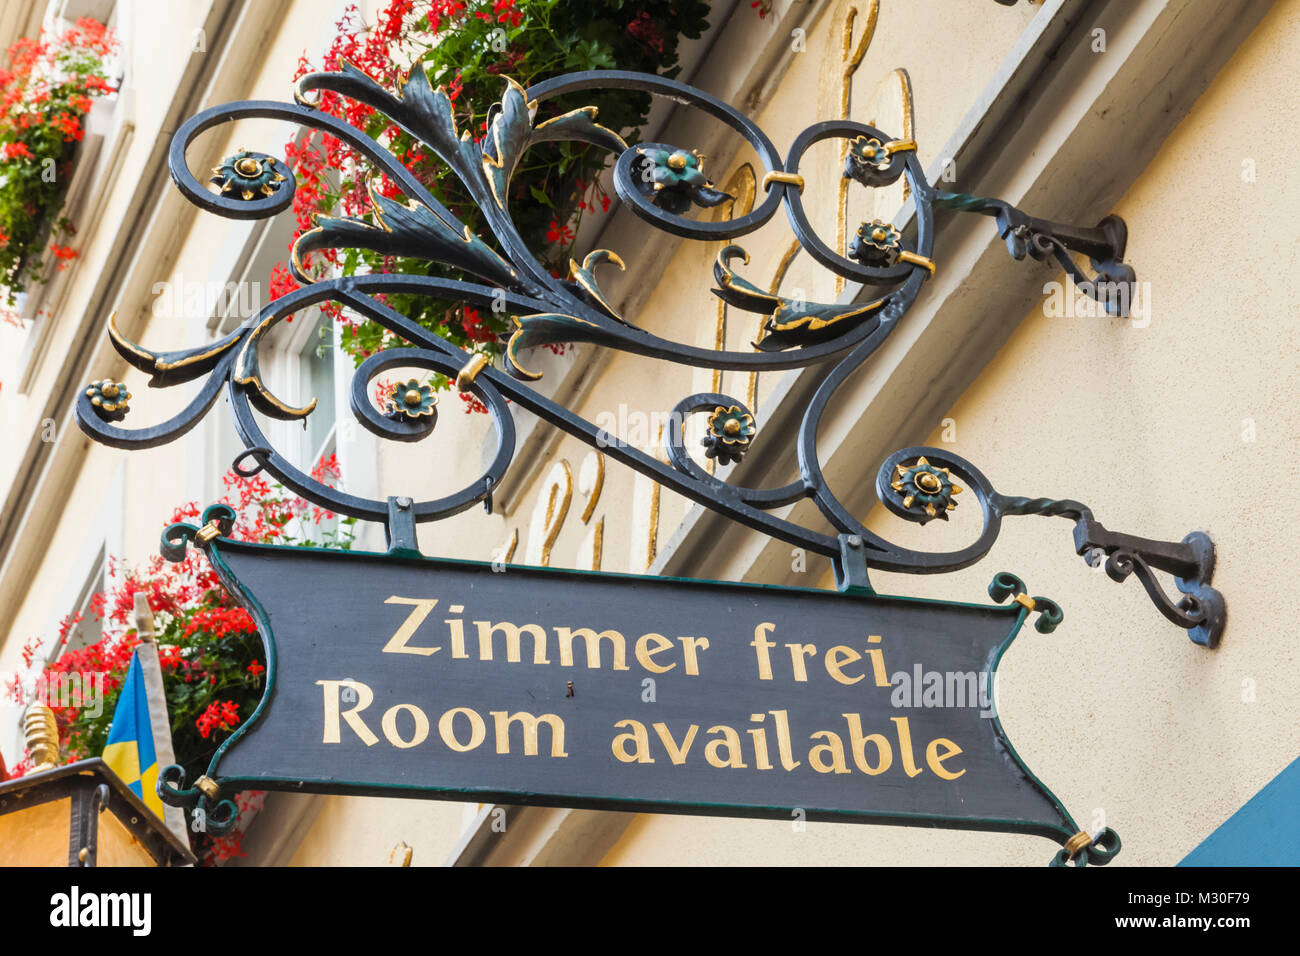 Germany, Bavaria, Romantic Road, Rothenburg ob der Tauber, Hotel Zimmer Frei Room Available Sign - Stock Image